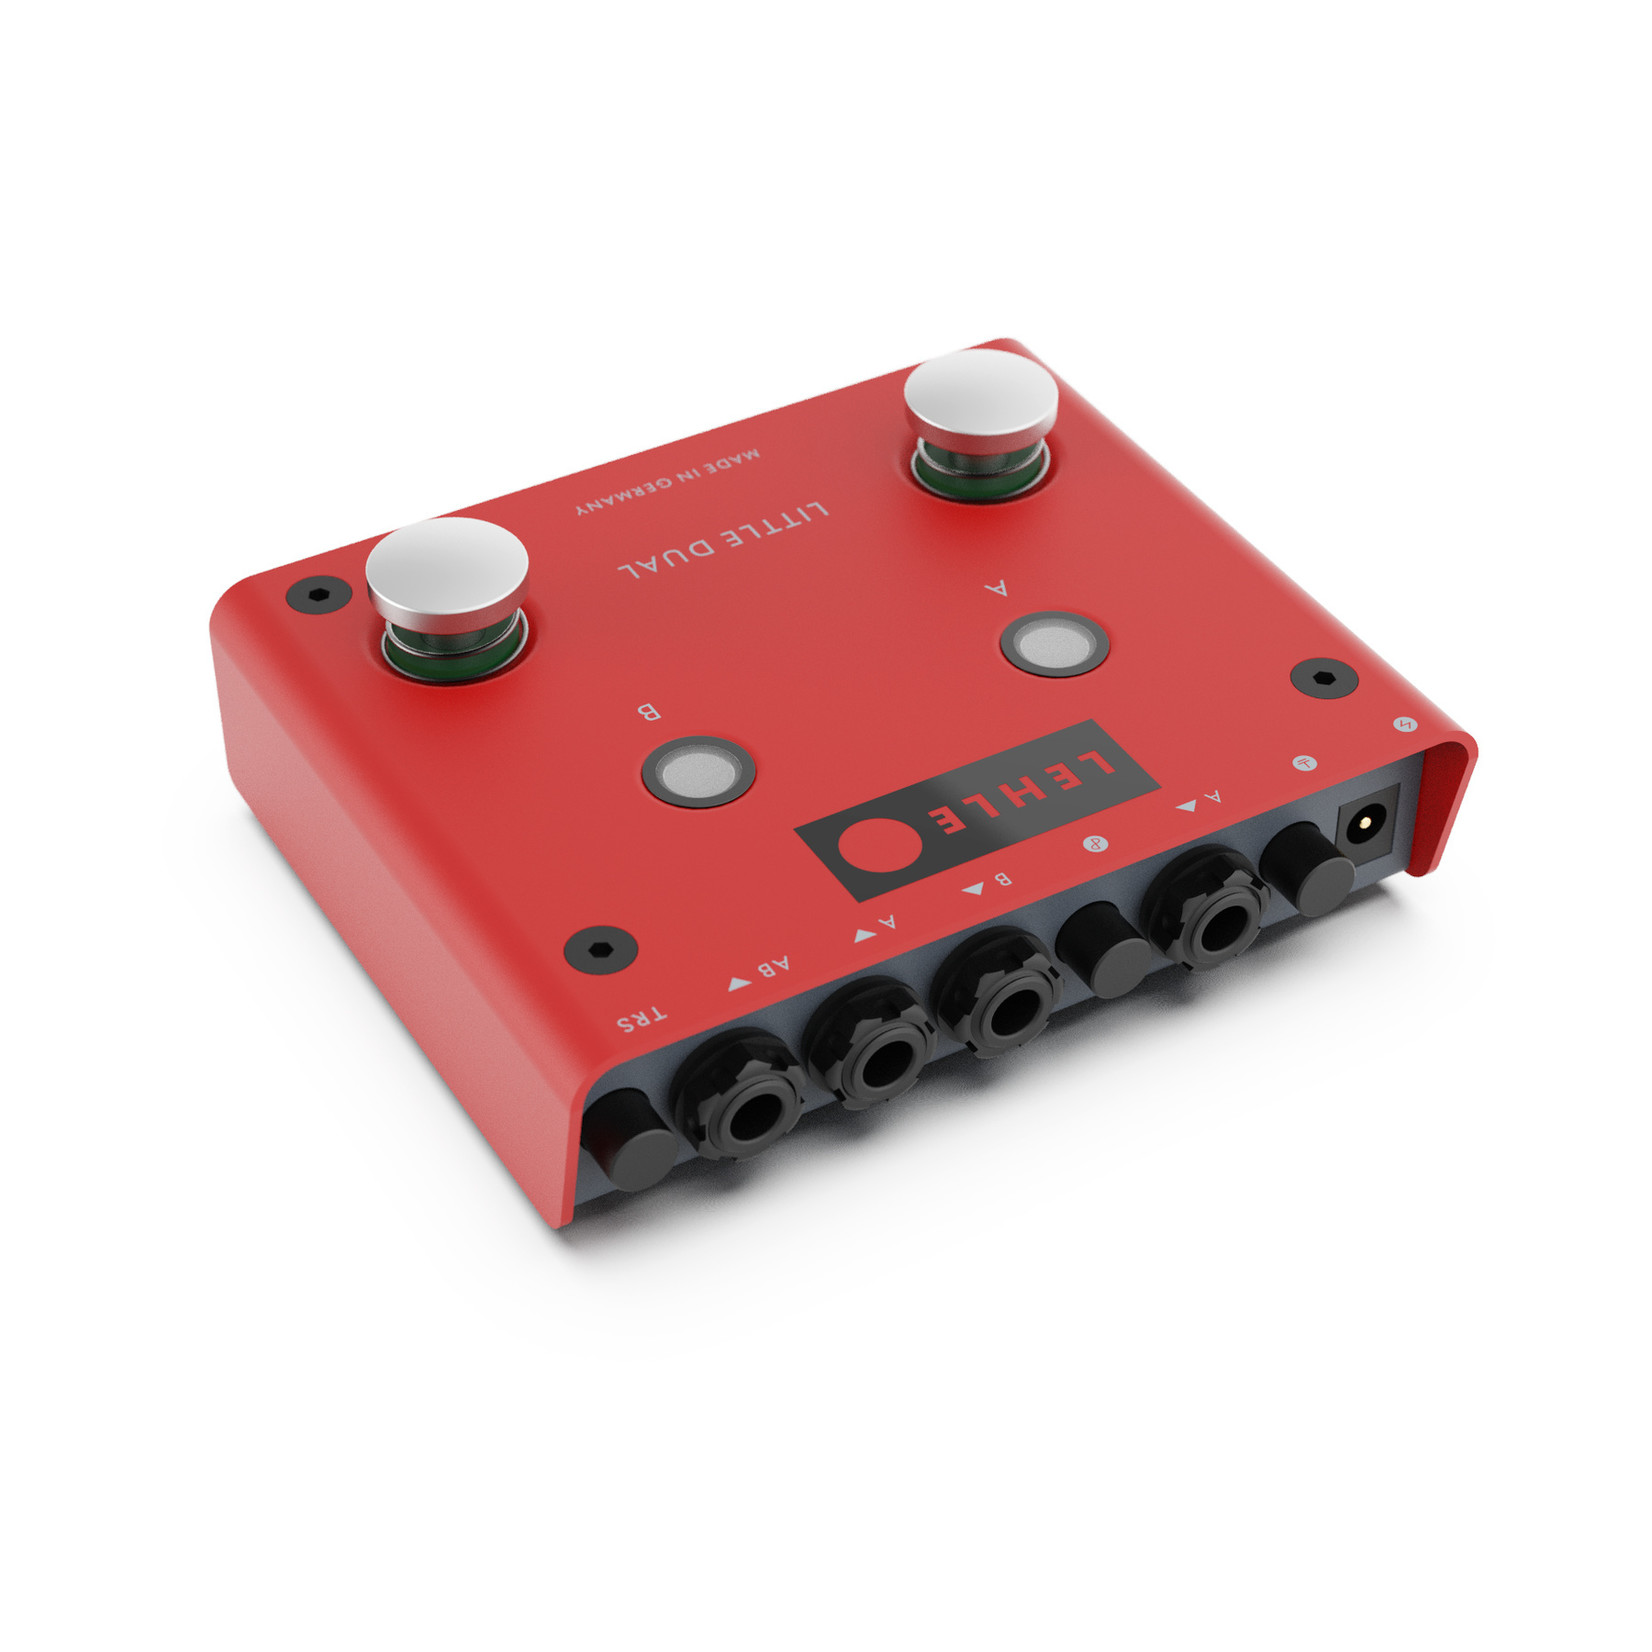 Lehle Lehle Little Dual II ABY switcher (A or B or both), Made in Germany (Latest Version!)